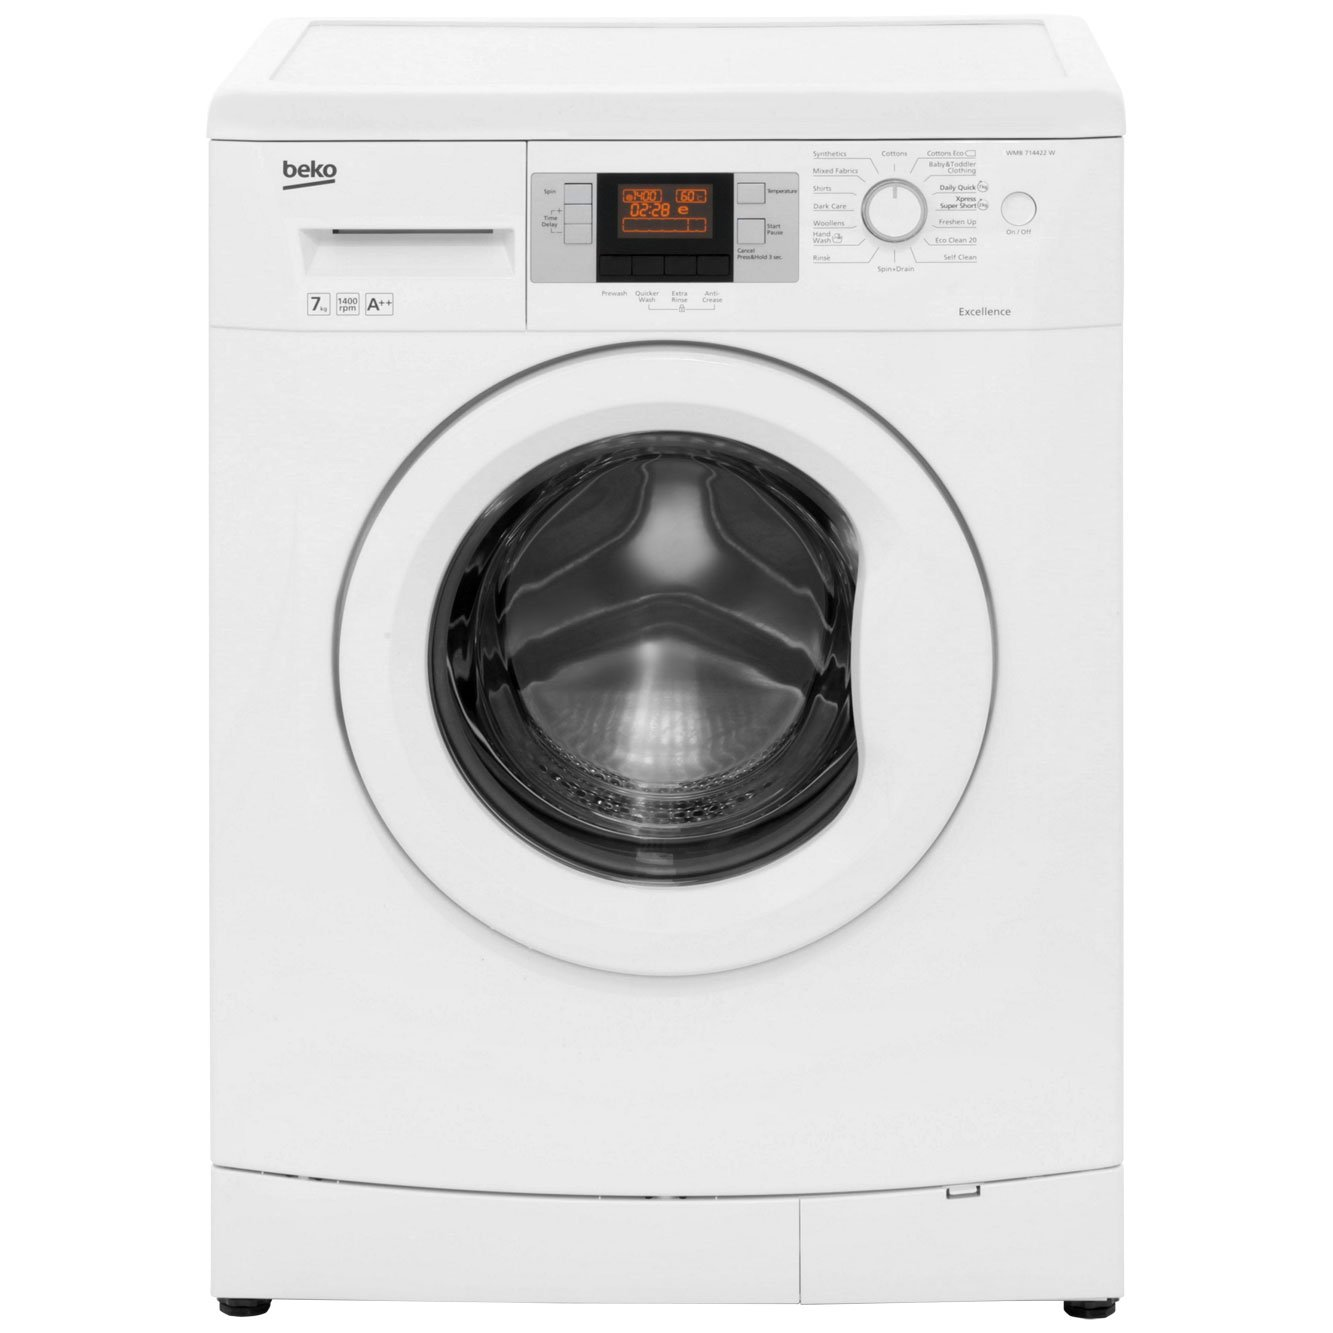 Best Washing Machine 2016 Top 7 Washing Machine Reviews